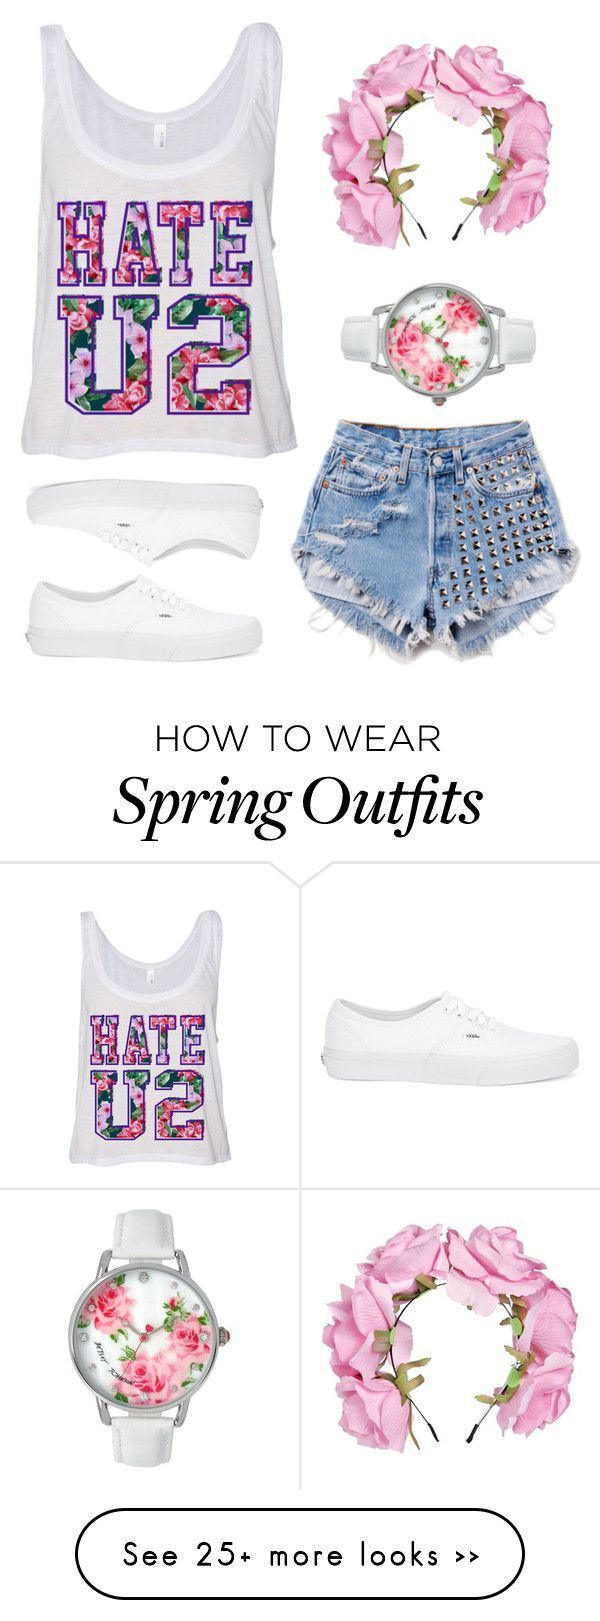 """Floral"" by all-r on Polyvore featuring moda, Runwaydreamz, Vans, Boohoo y Betsey Johnson"